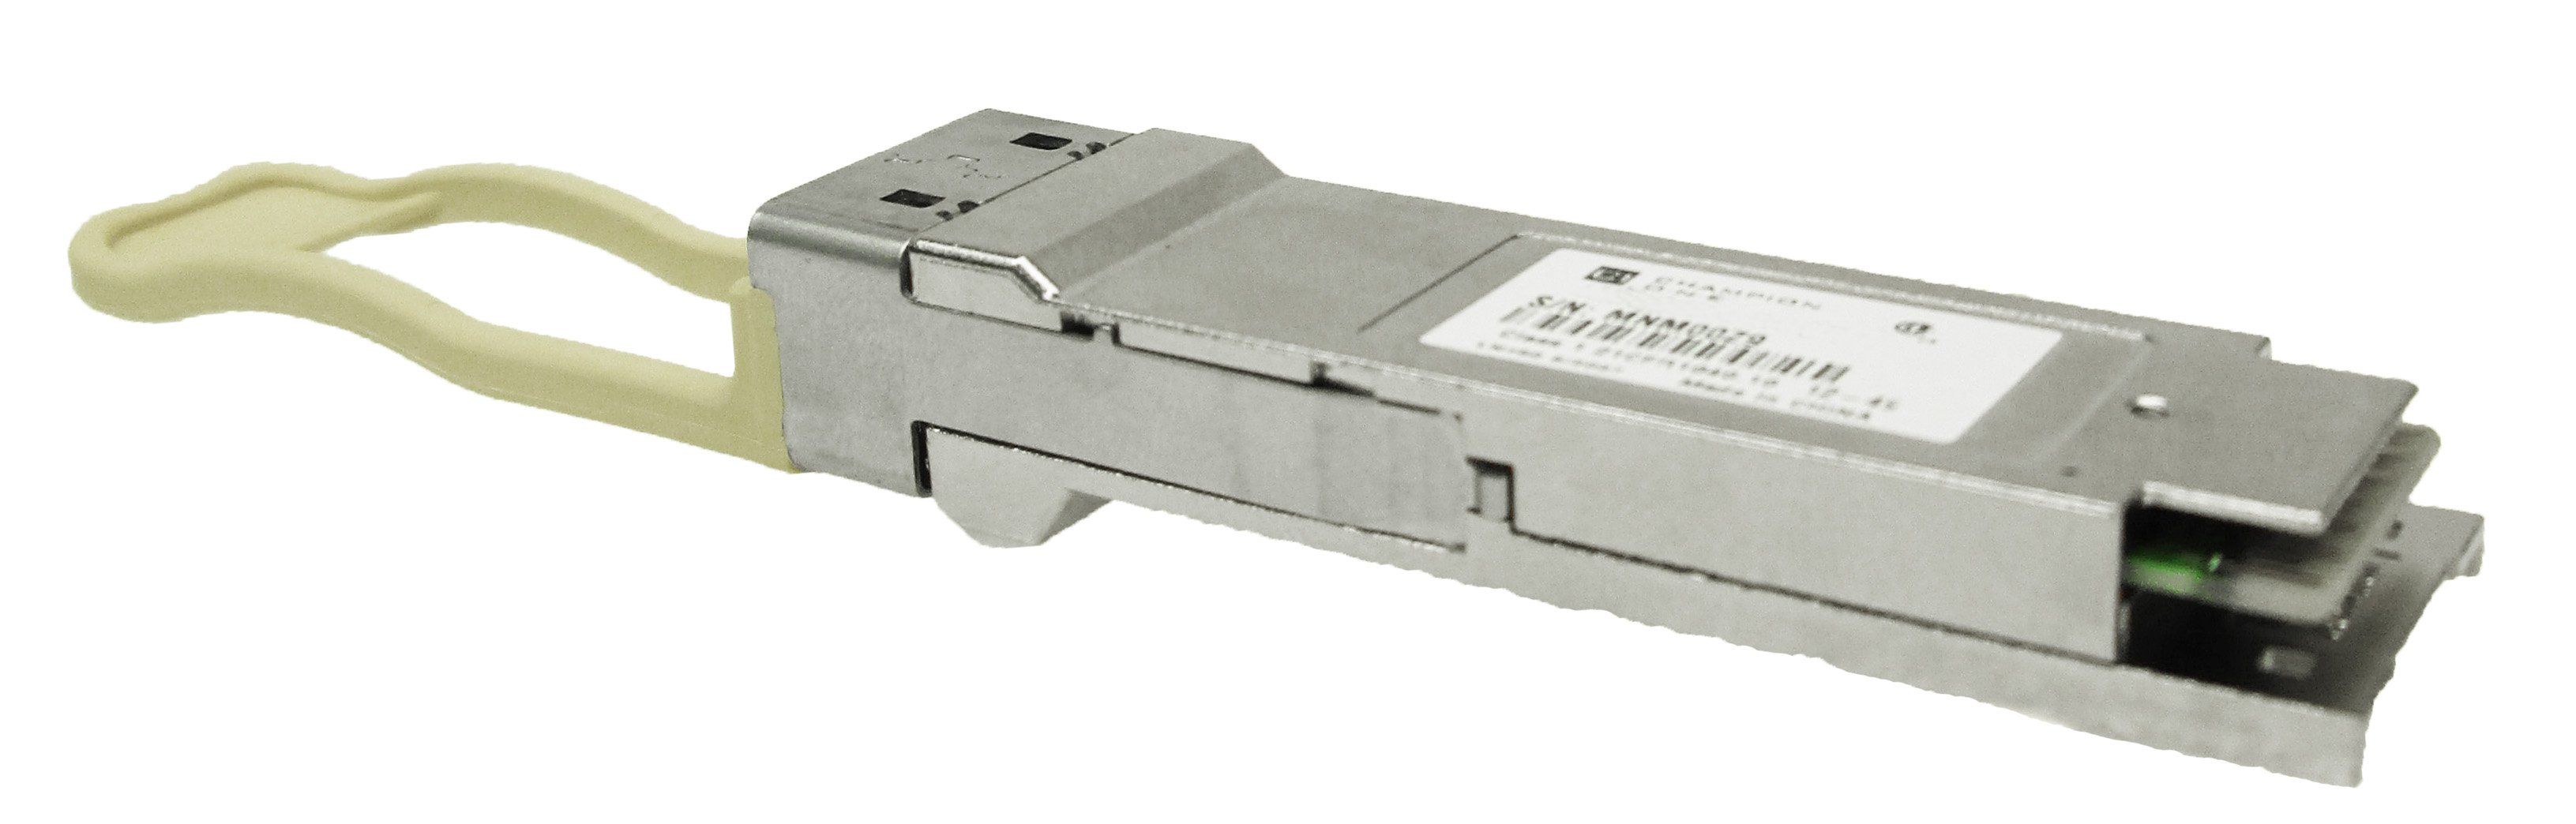 40GBase-PSMLR4 QSFP+, 10km SMF MPO 8-degree angled connector